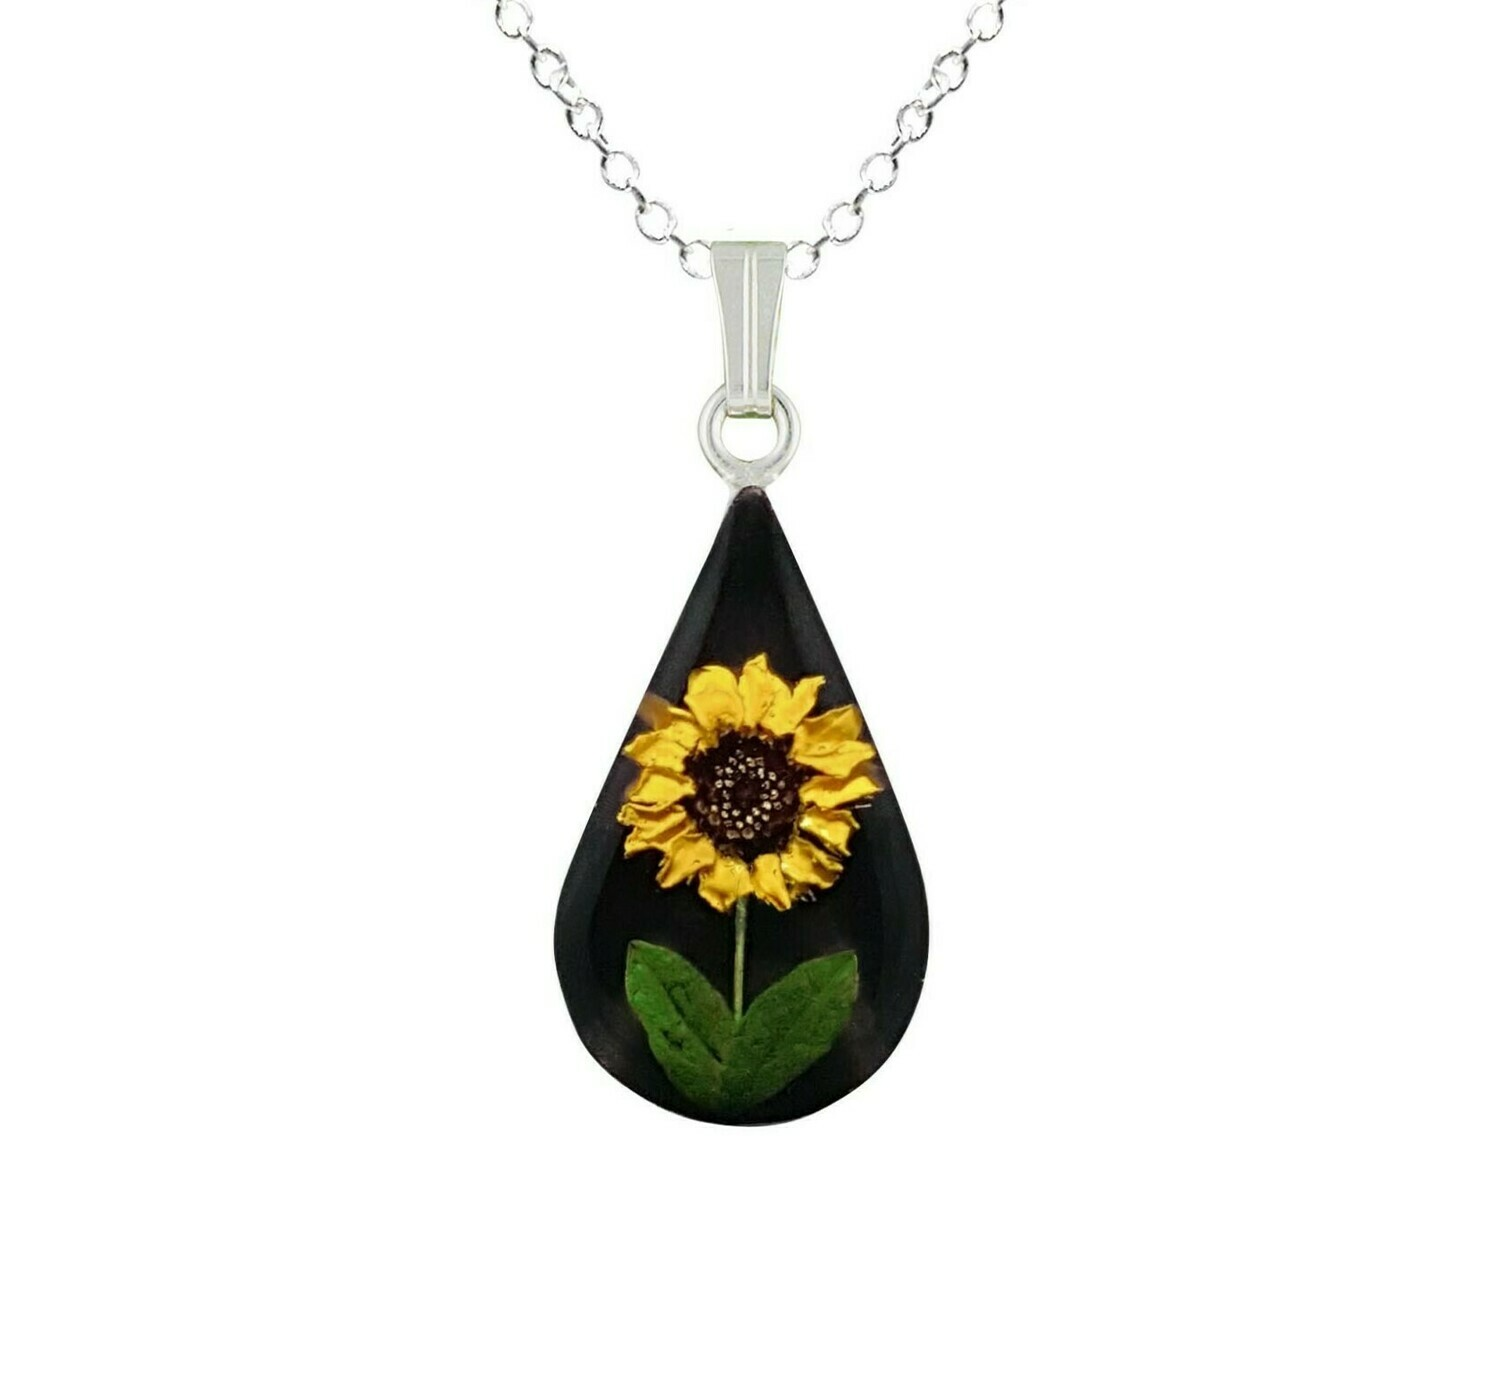 Sunflower Necklace, Teardrop, Black Background